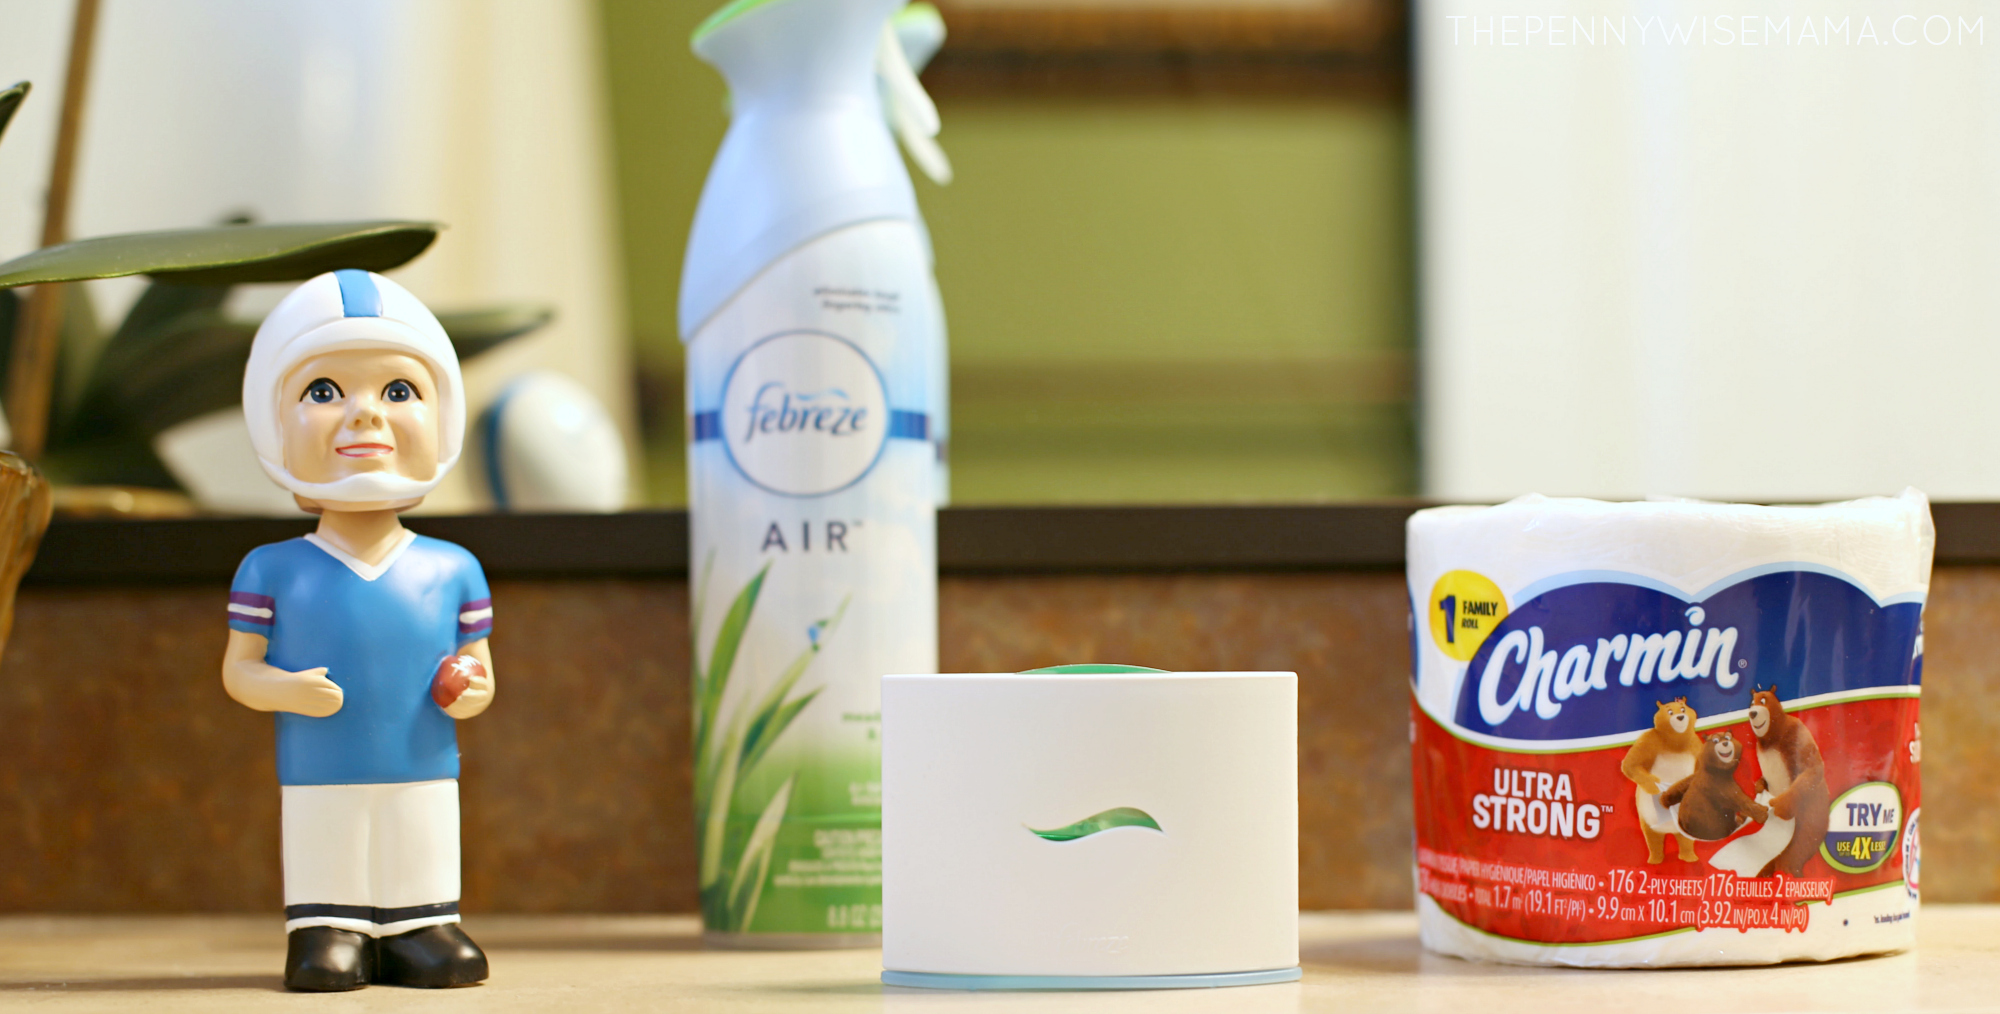 Prep for Game Day with These #BathroomBreak Must-Haves